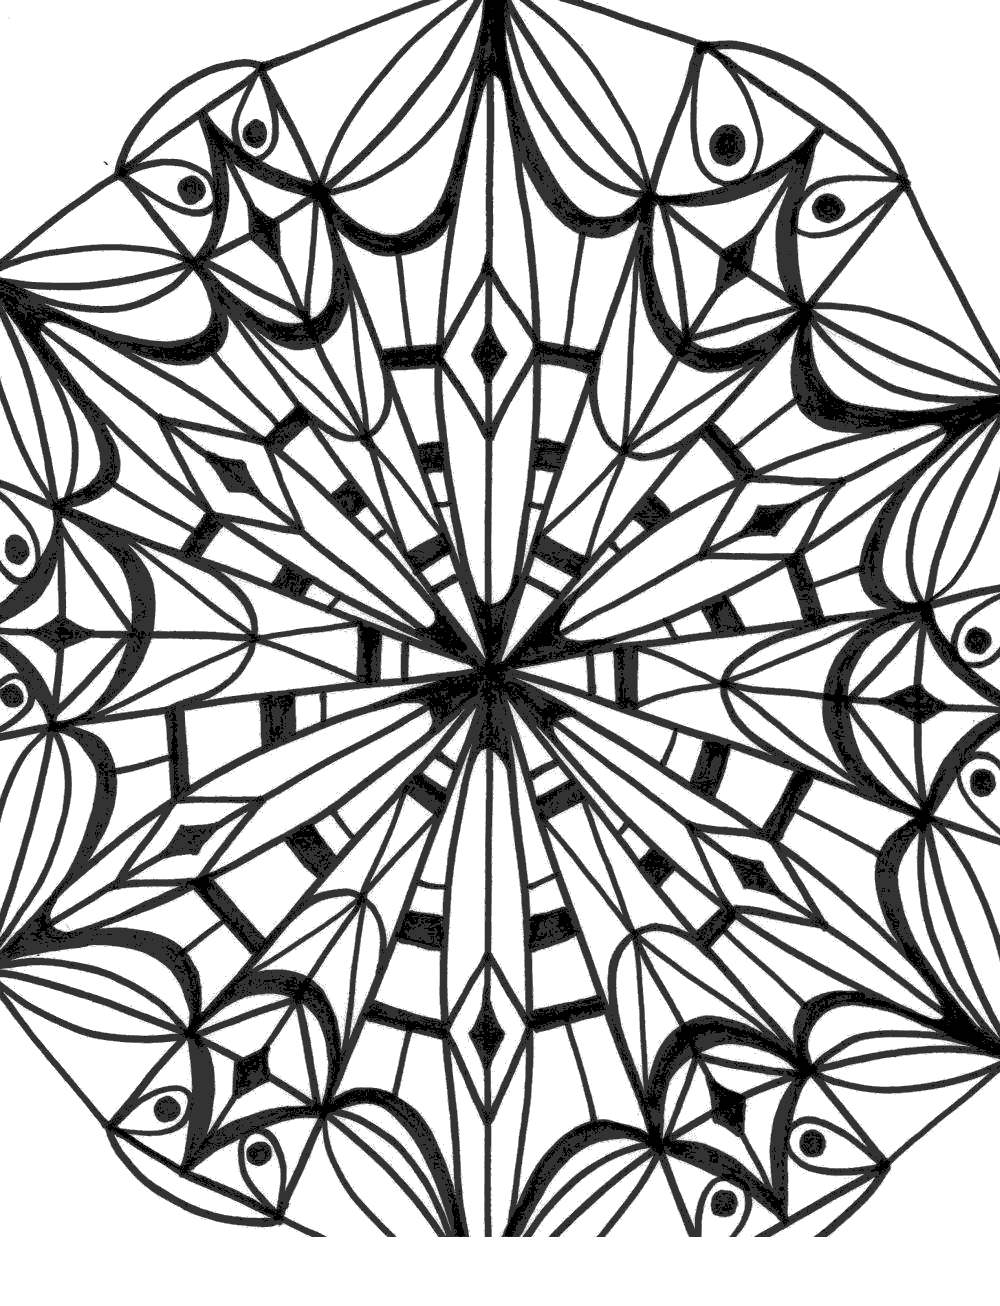 Free Kaleidoscope Coloring Pages Drawing Personal printable